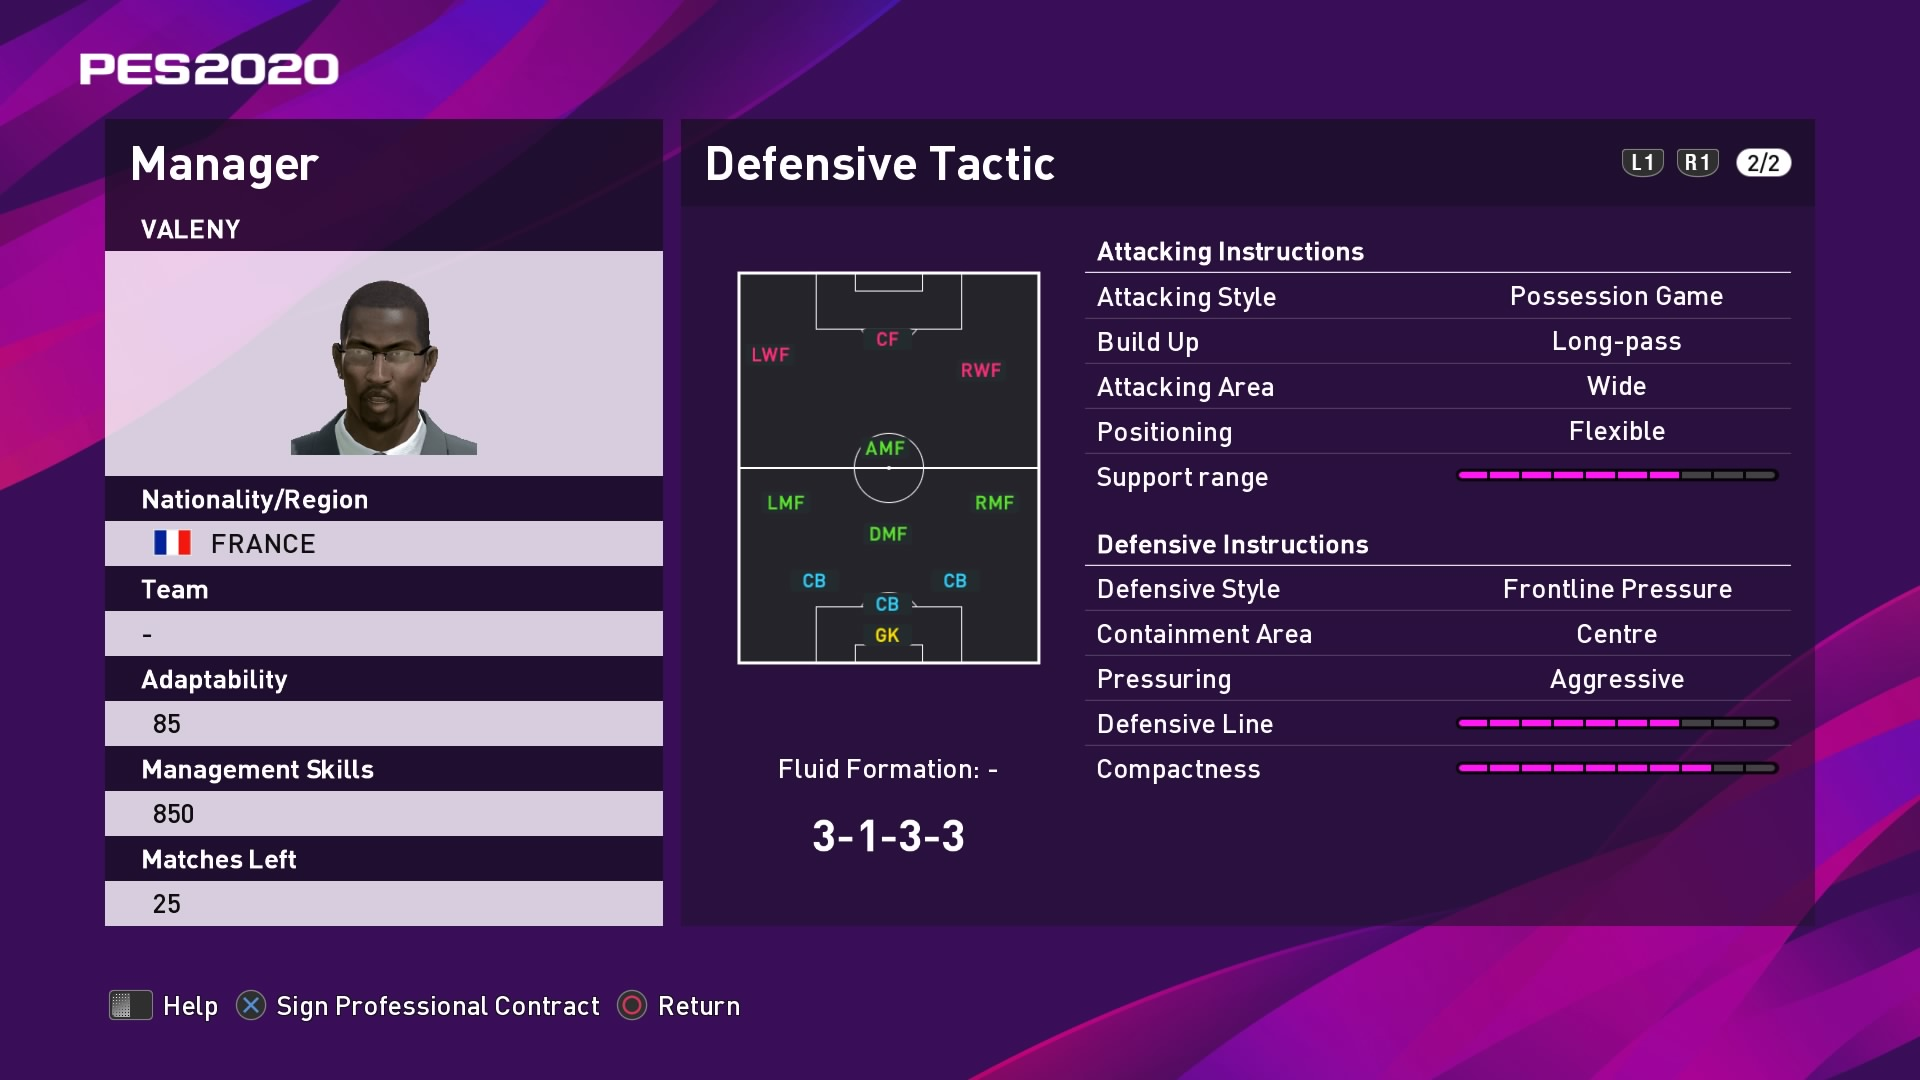 Valeny Defensive Tactic in PES 2020 myClub